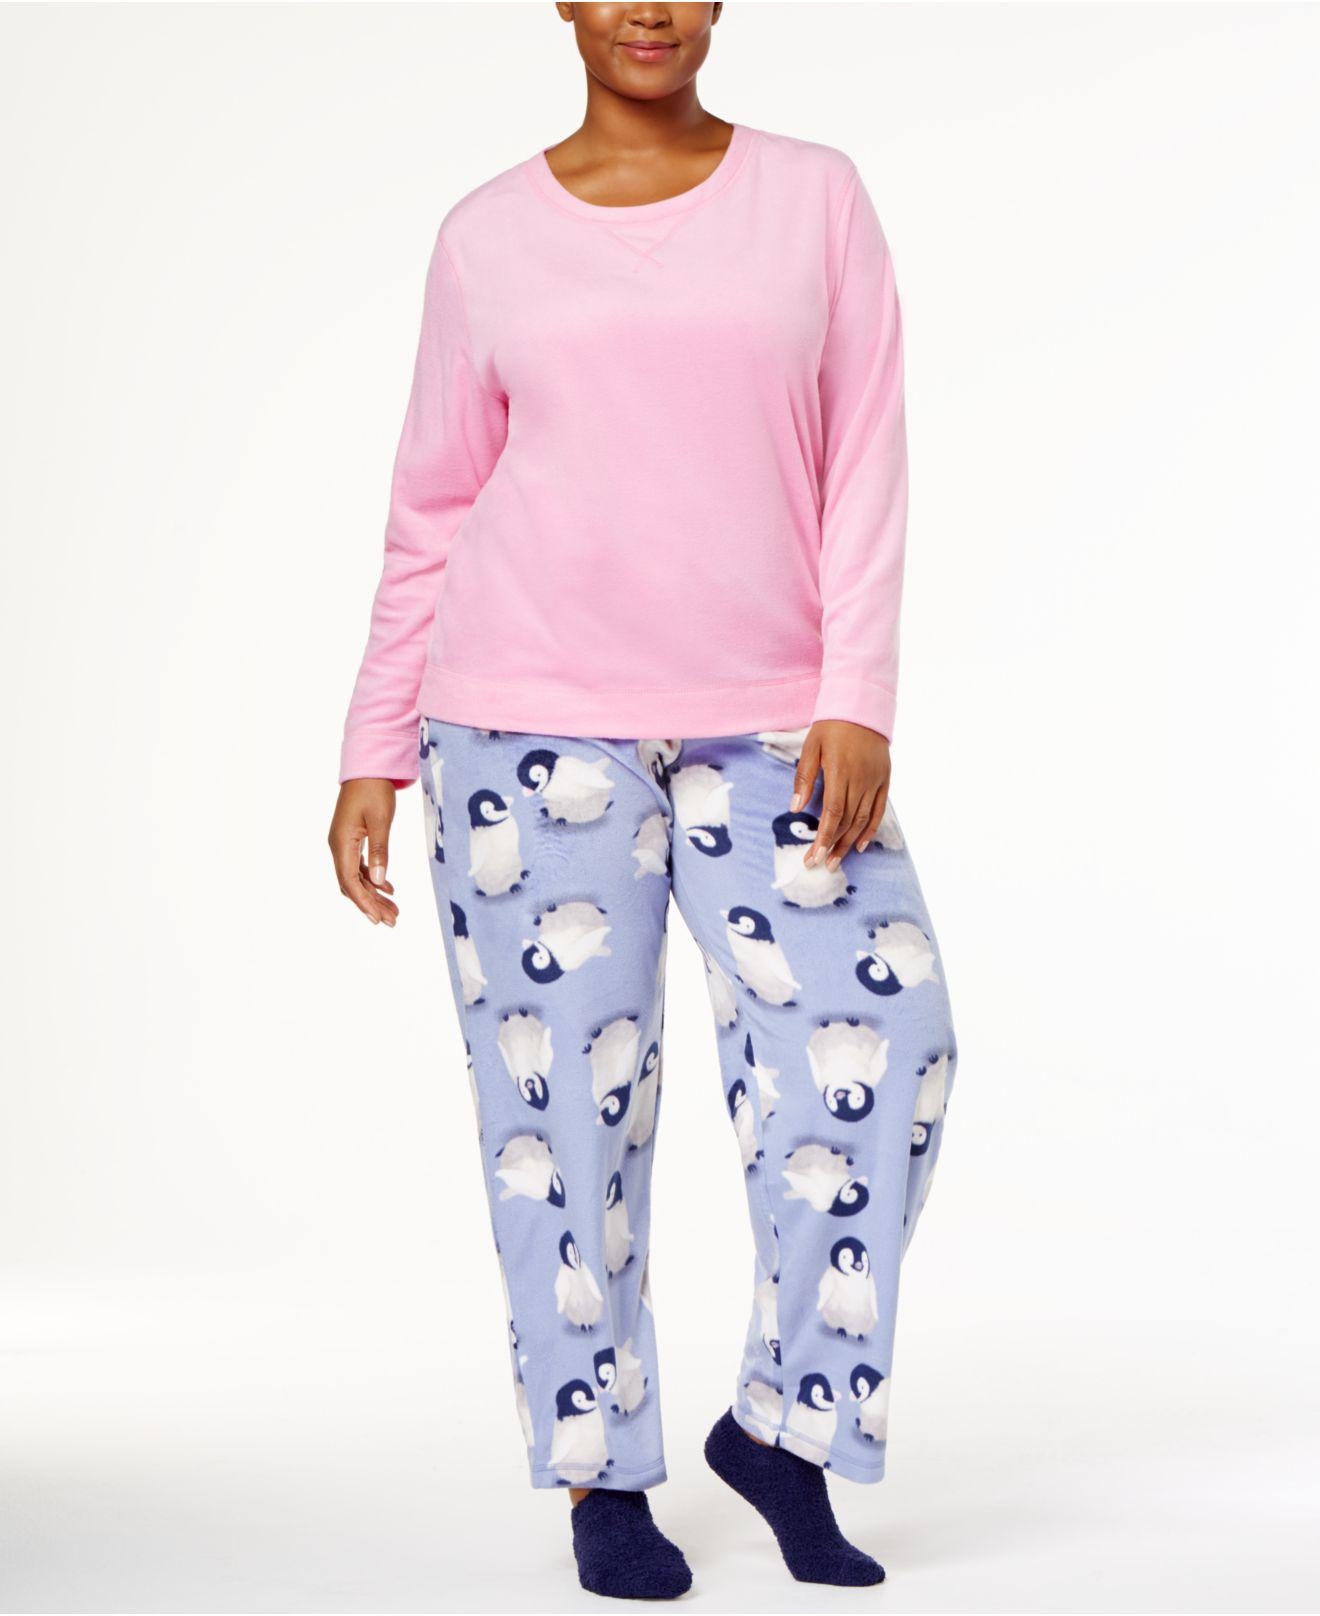 Lyst - Hue Plus Size Sueded Fleece Top   Printed Pants With Socks ... b691782d9